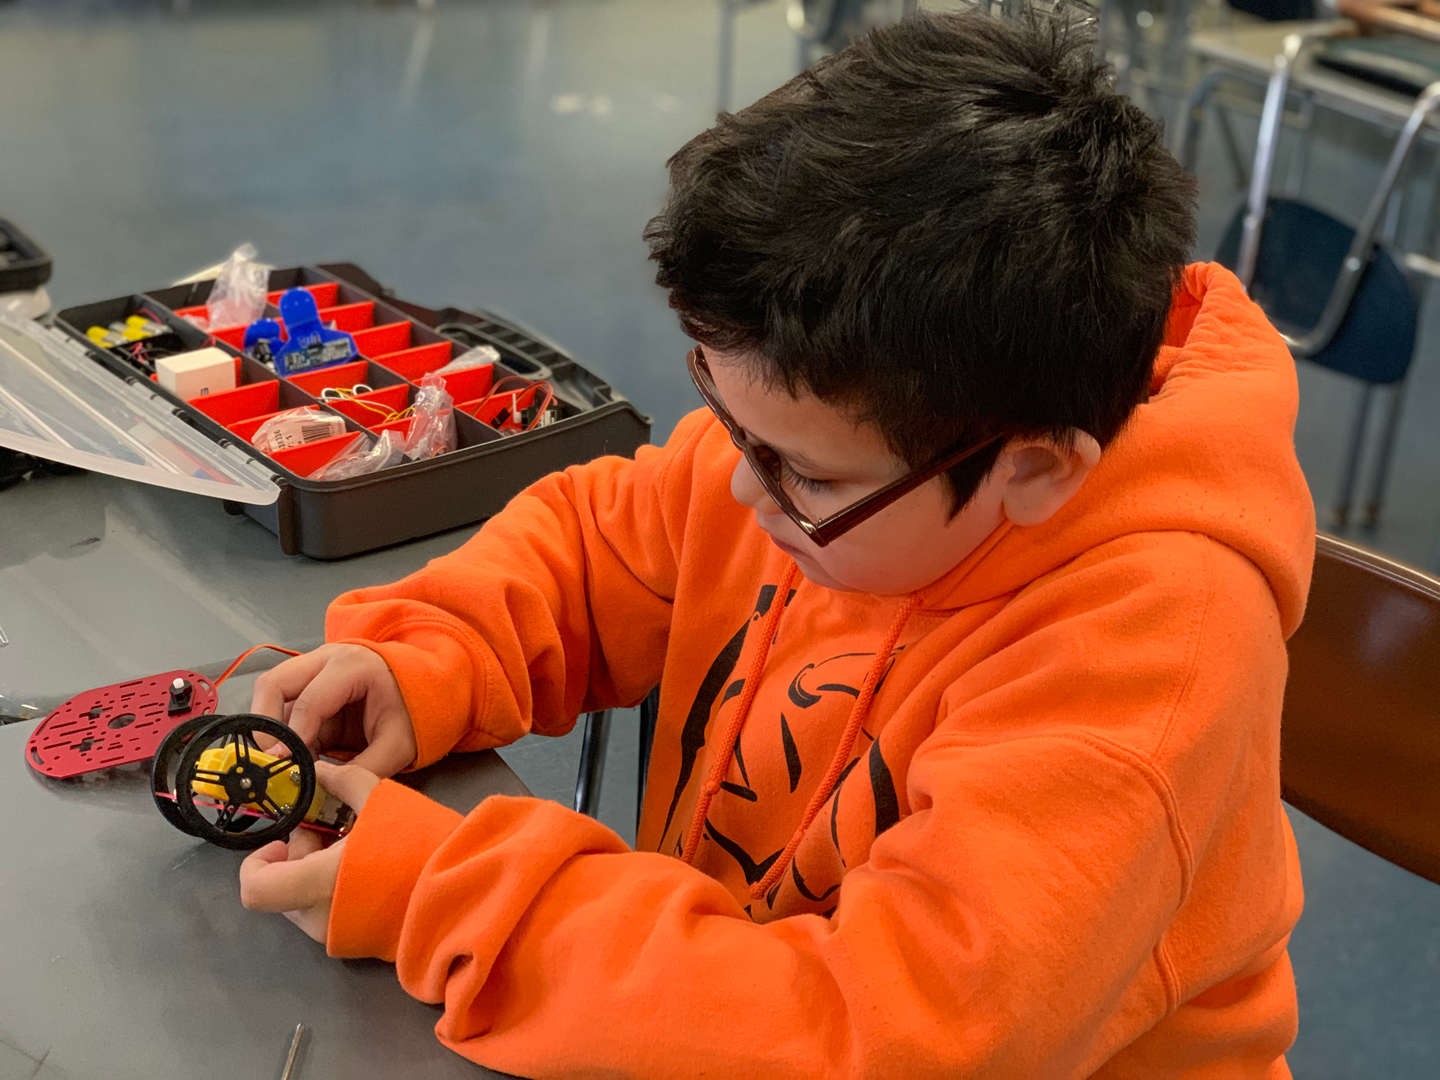 NSLA Robotics Club, Student working on the wheels of a robot